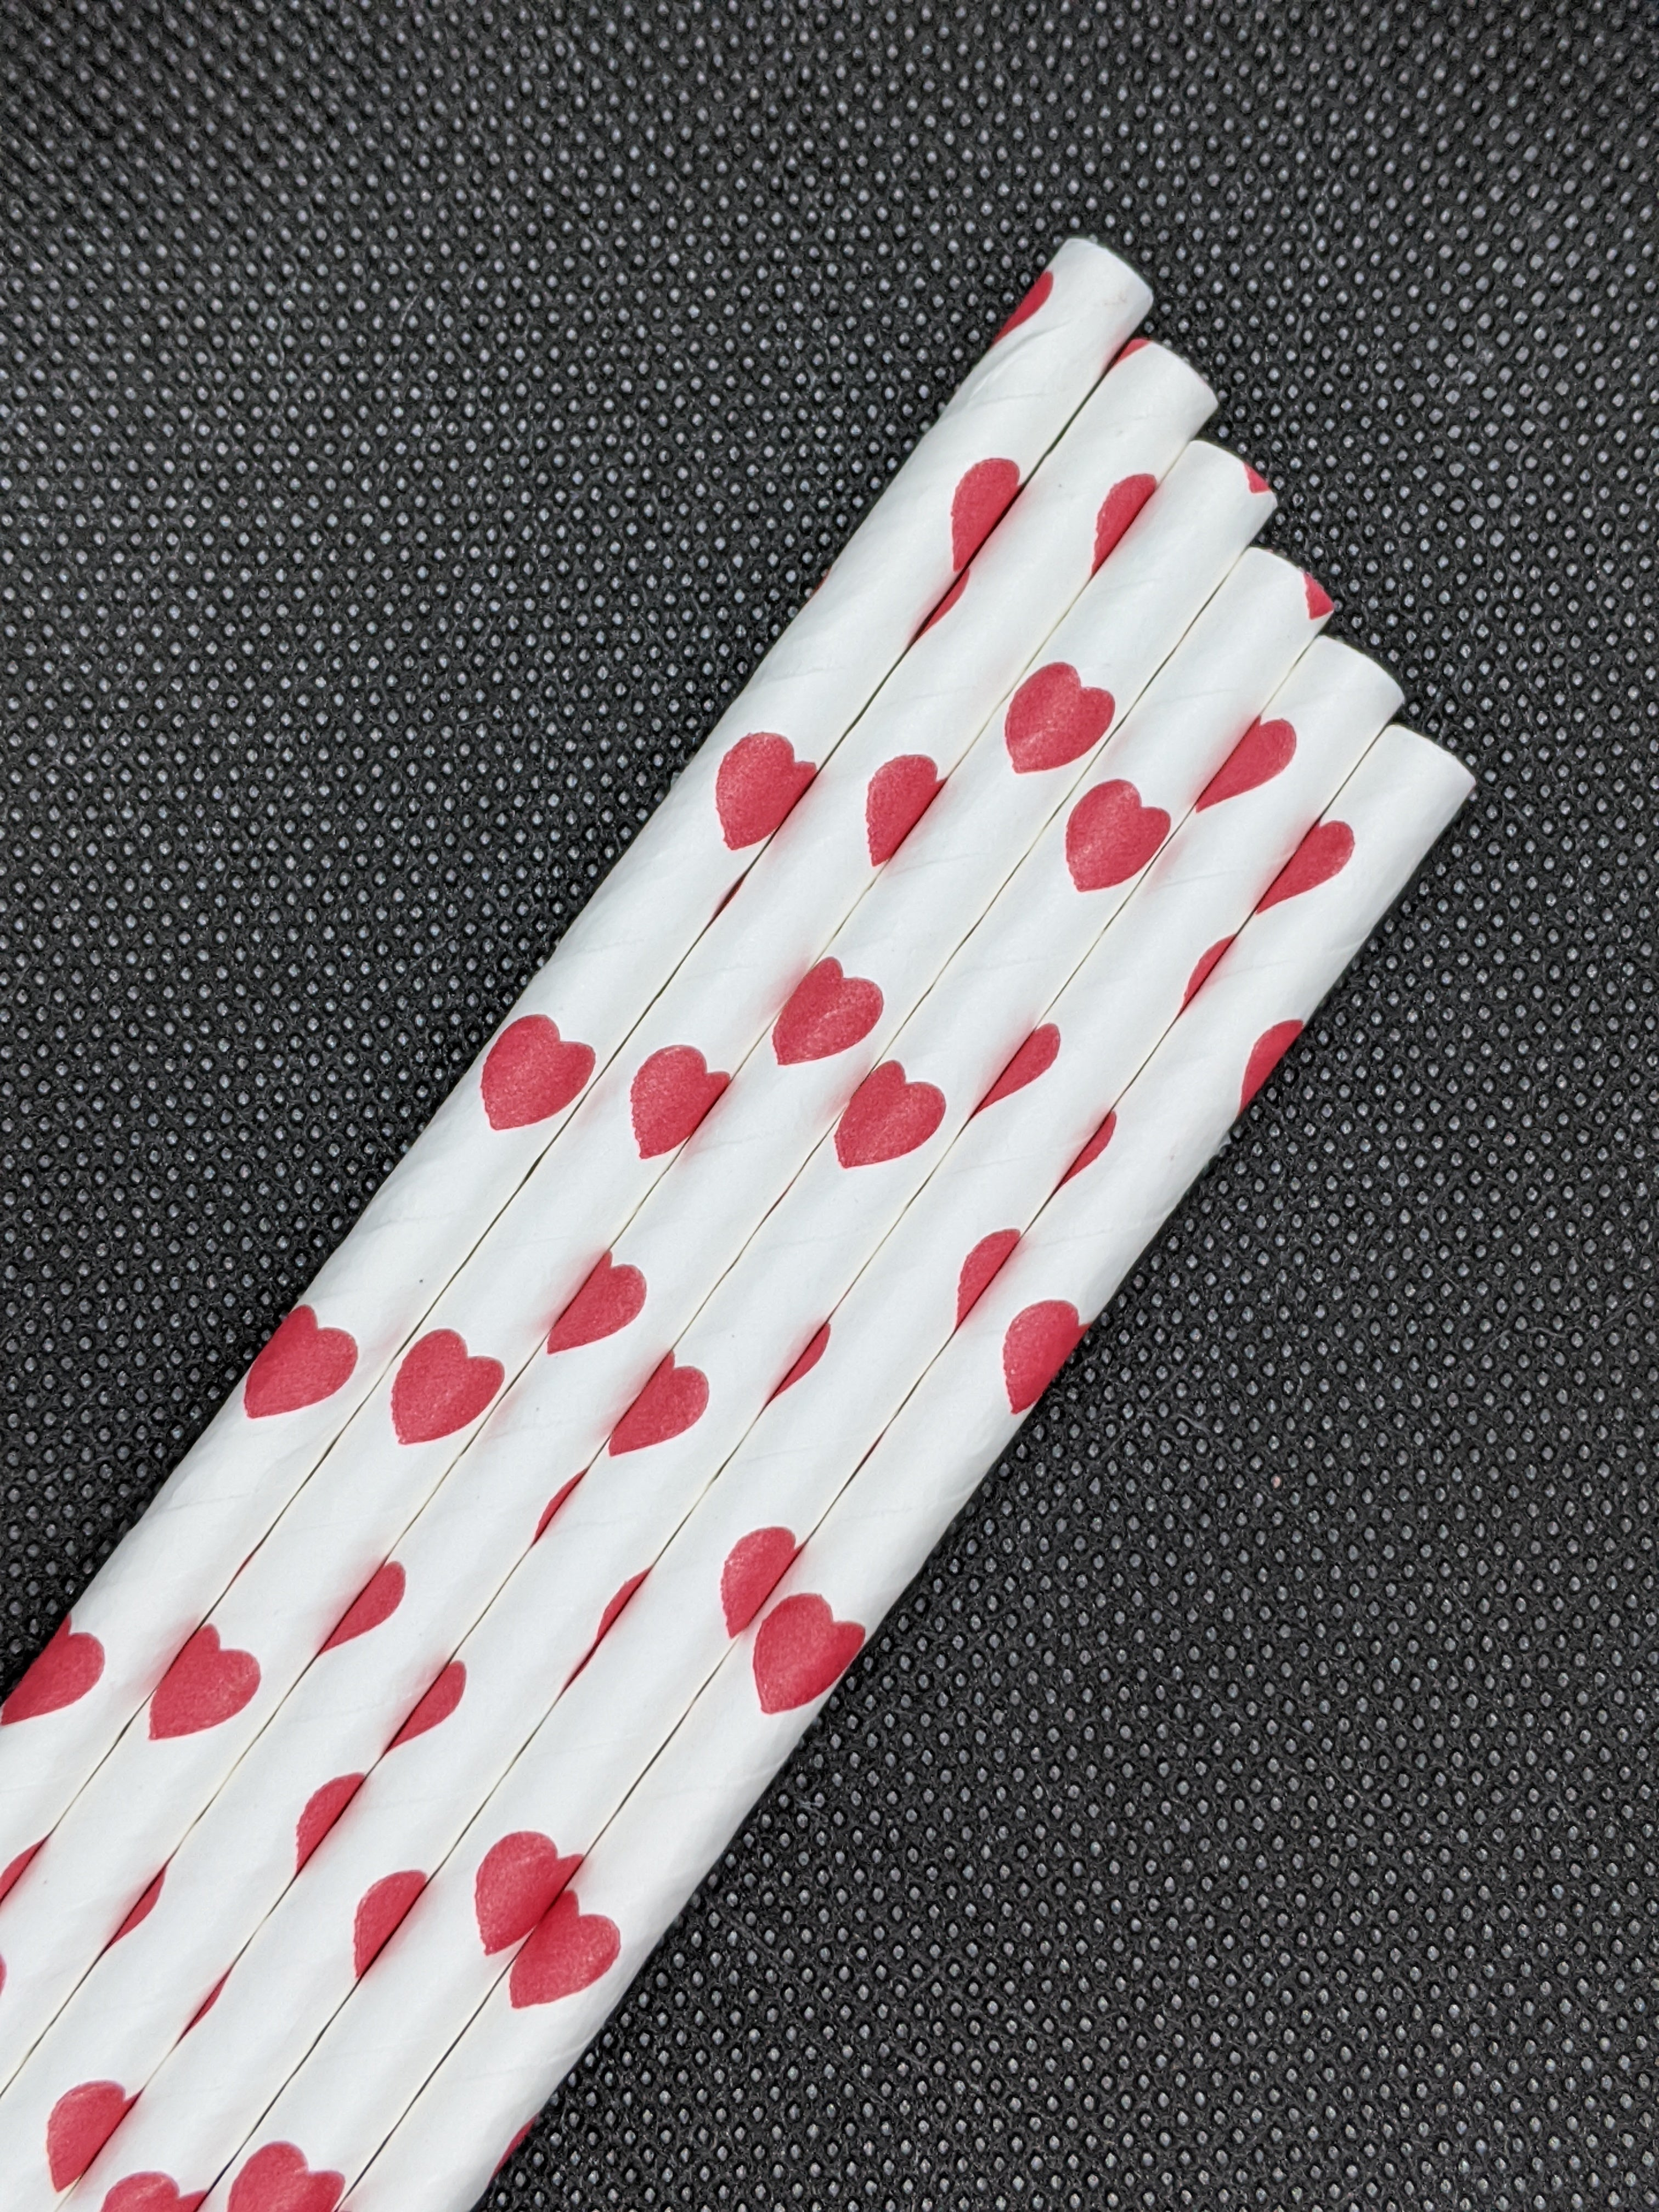 "7.75"" PAPER STRAWS-RED HEARTH DESIGN - 2400 CT (WRAPPED) - Orcas Ocean Straws"